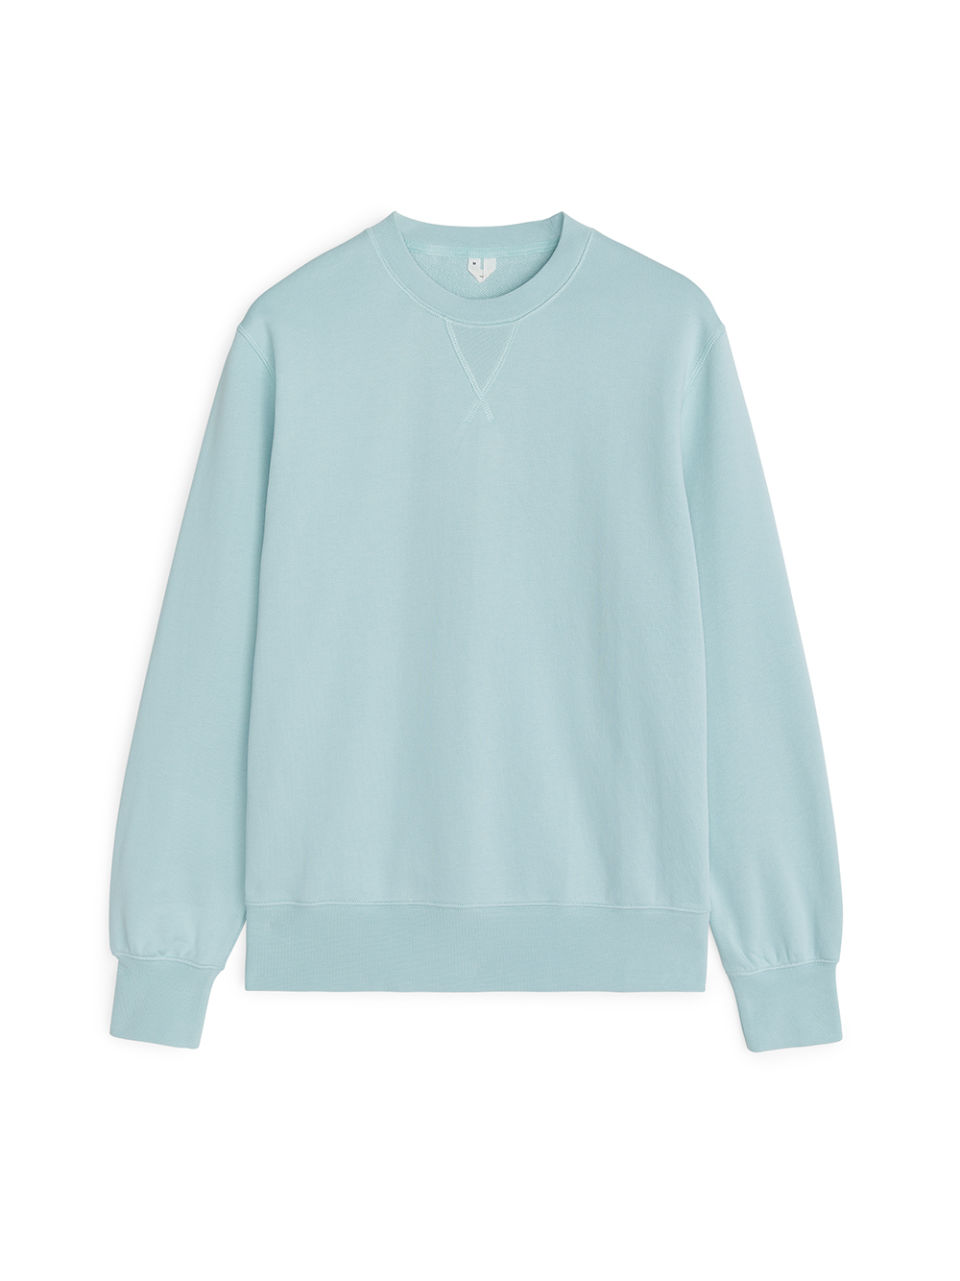 Front image of Arket french terry sweatshirt in turquoise